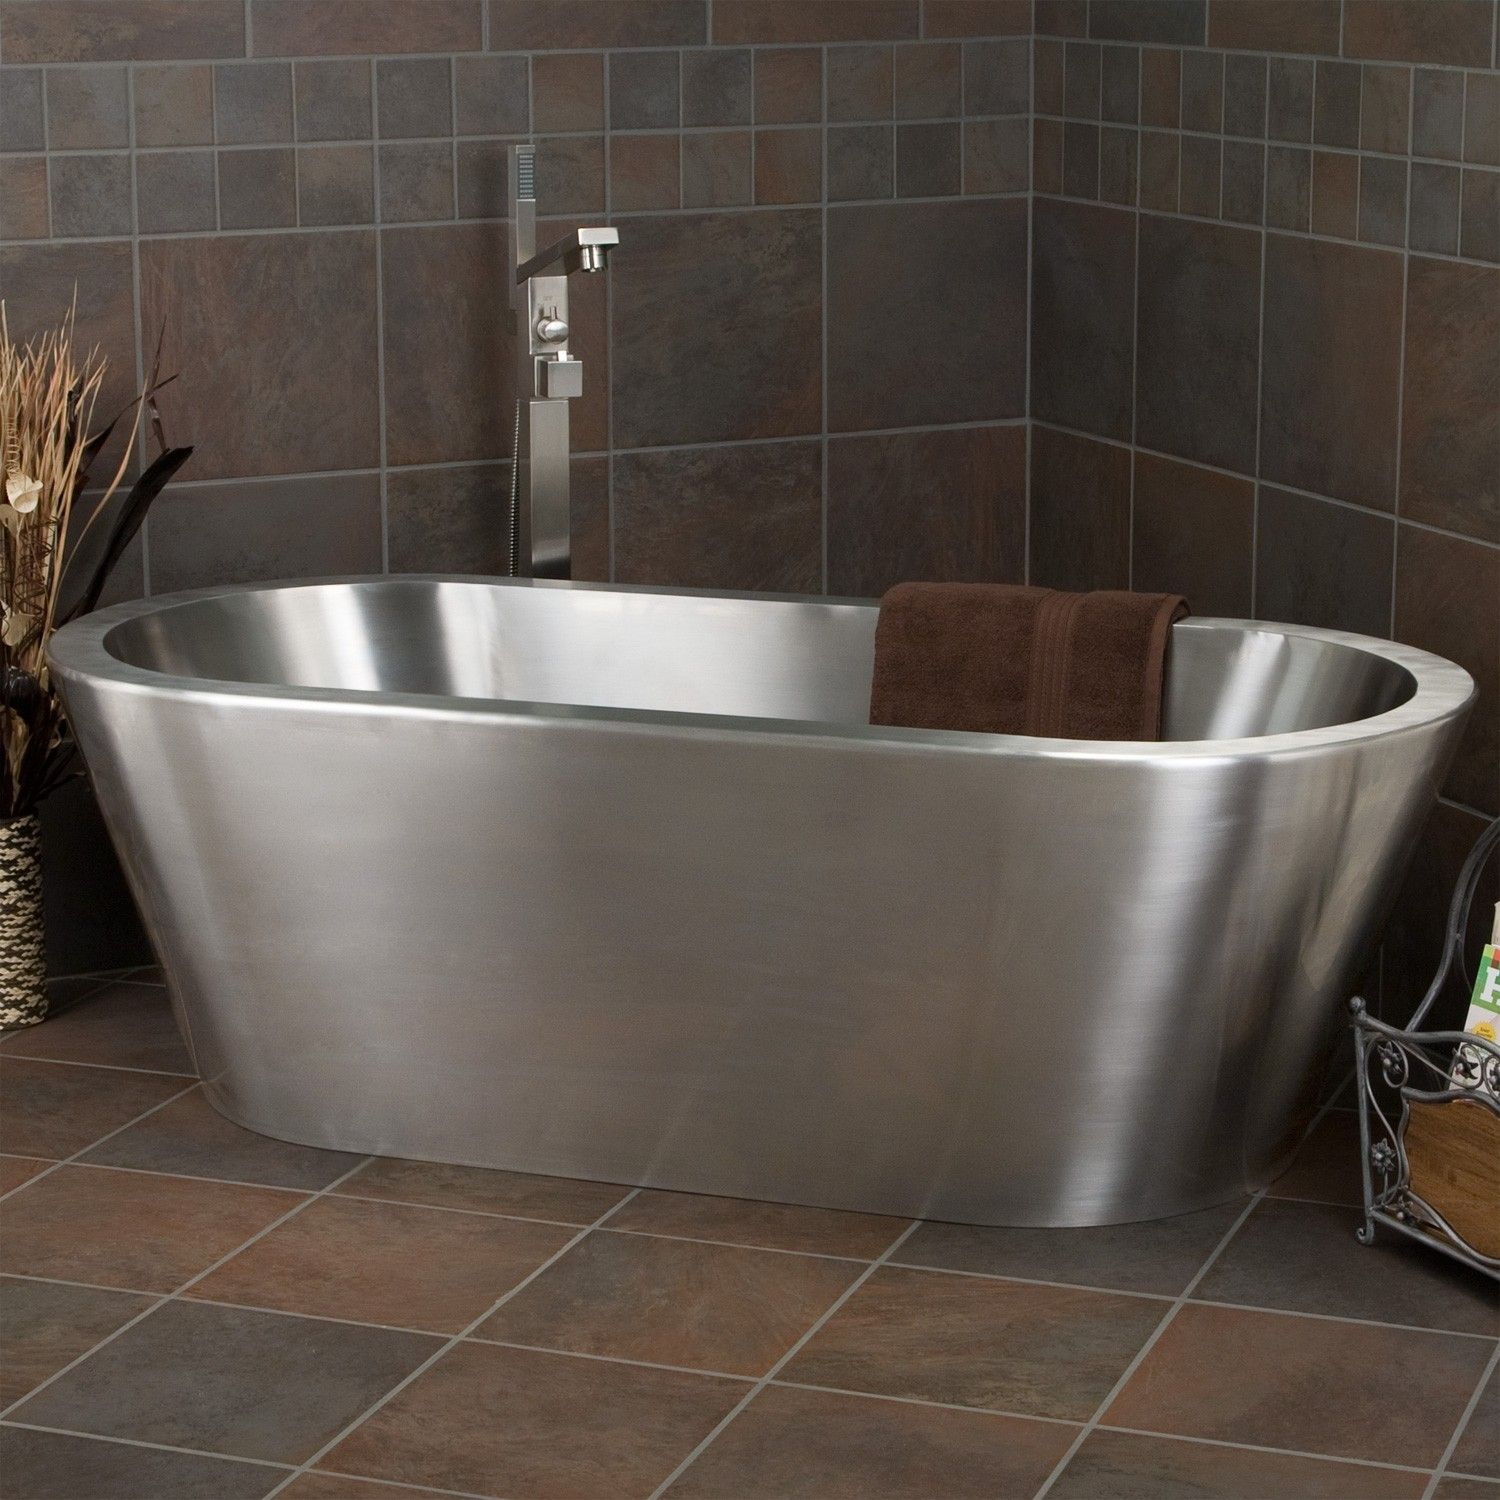 Collette Stainless Steel Freestanding Tub - Brushed. signature ...